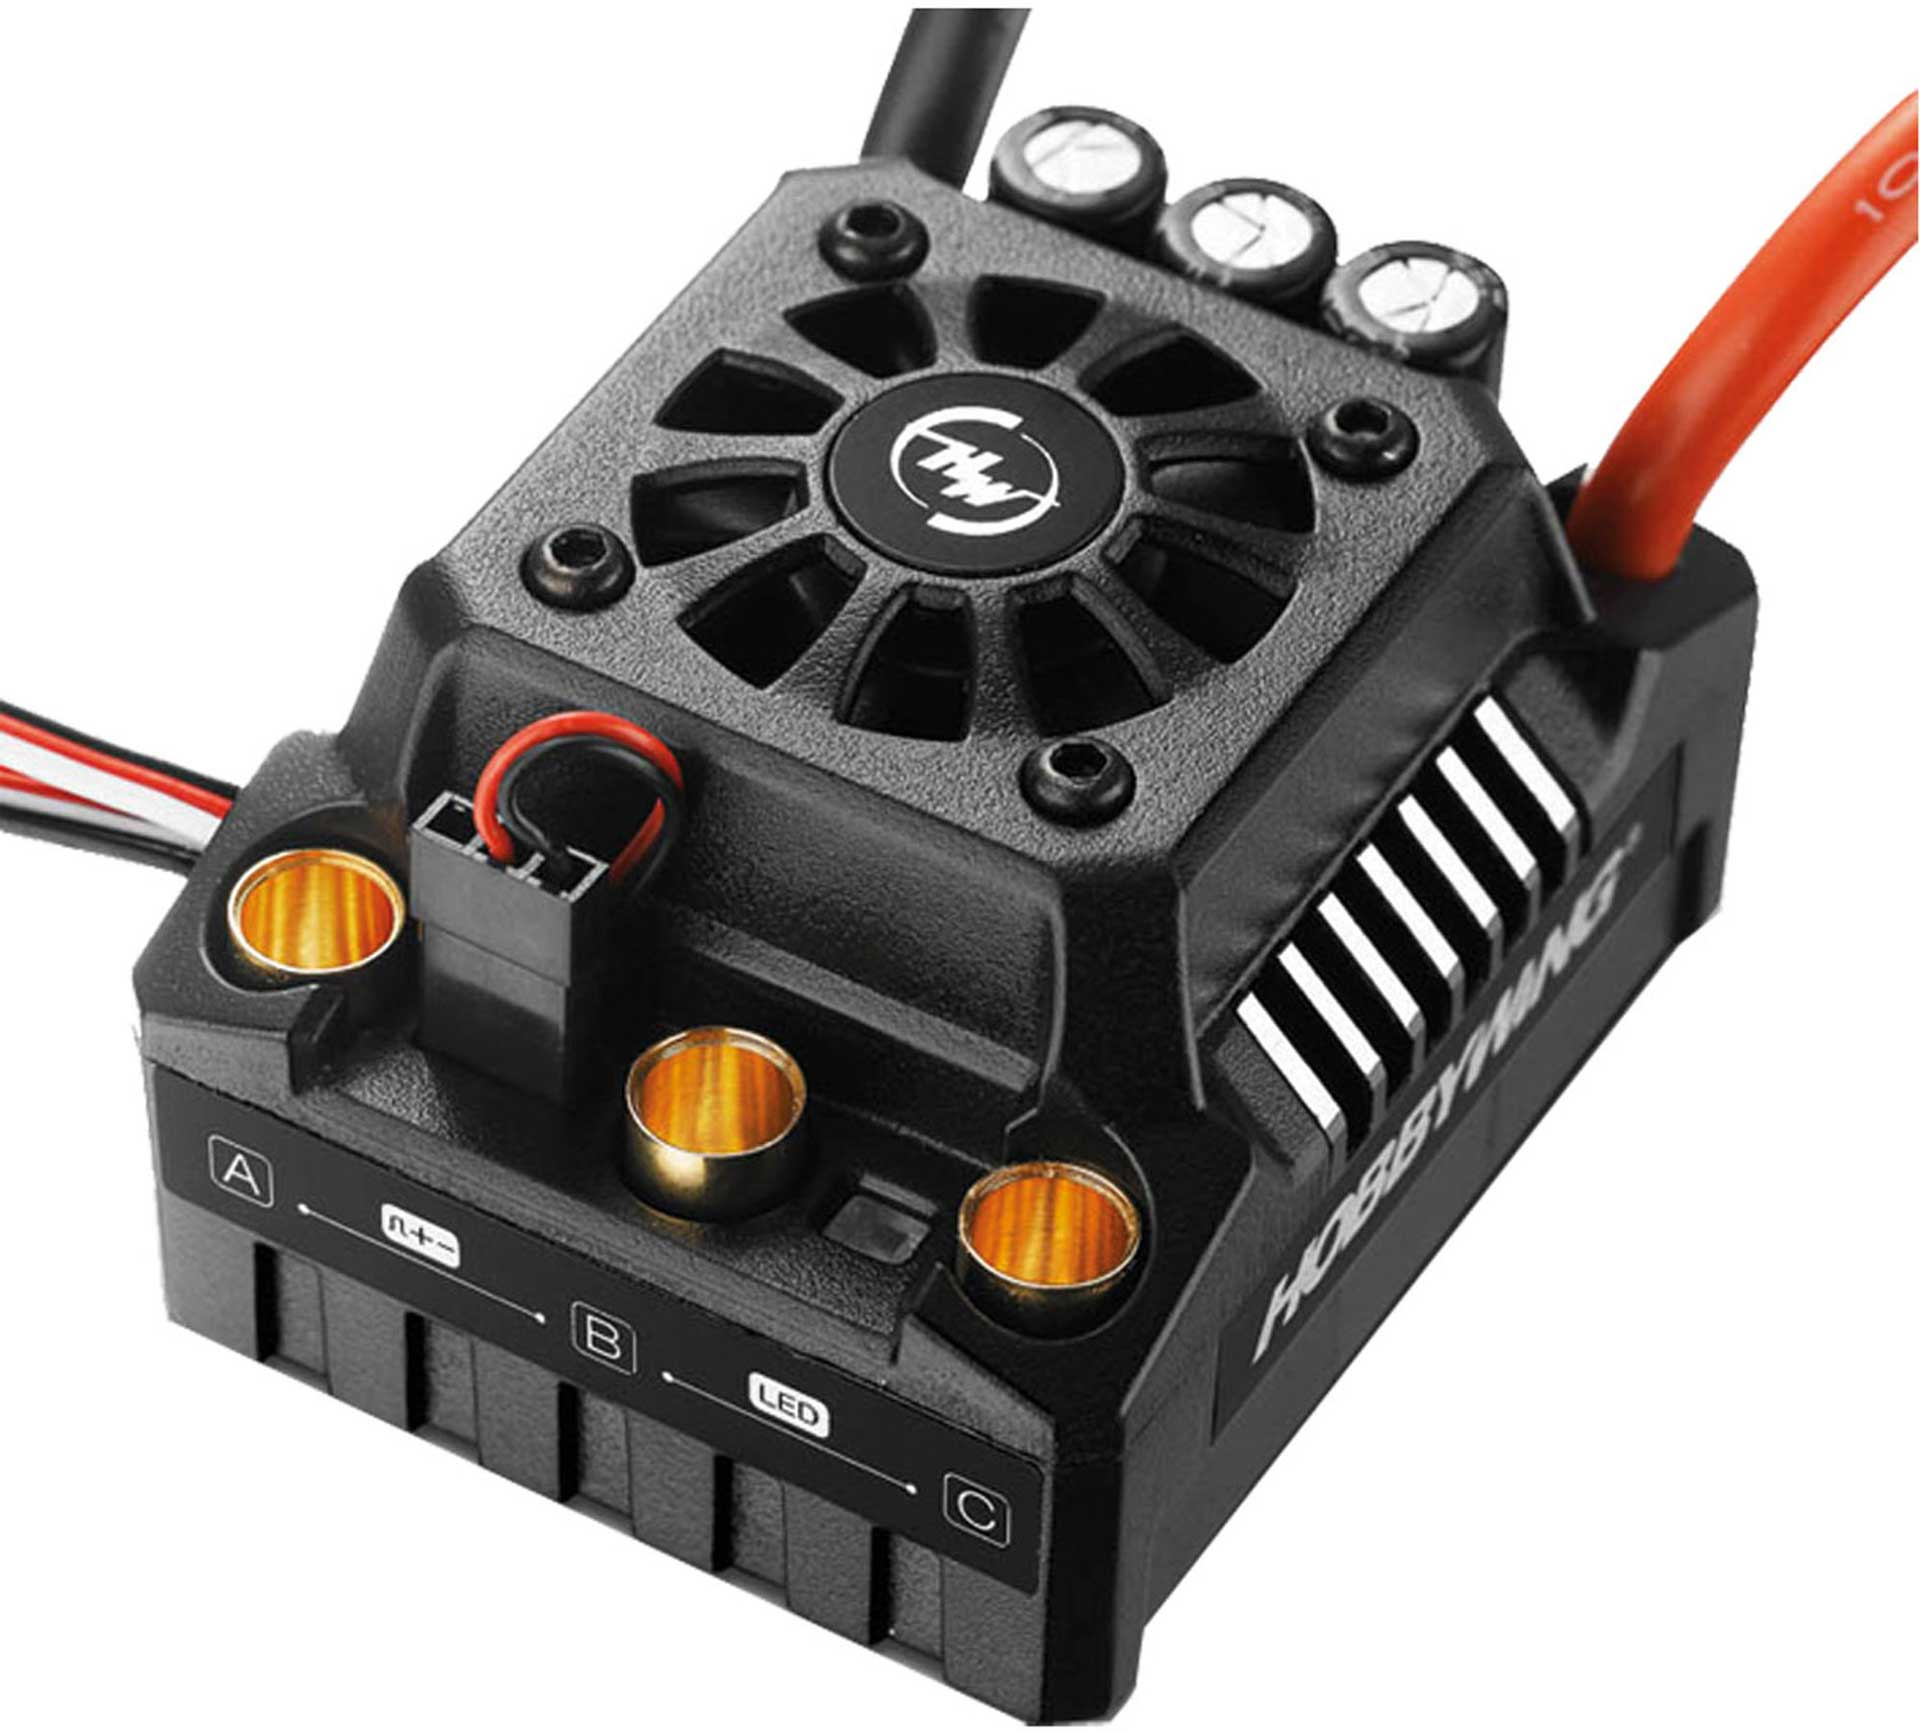 HOBBYWING EZRUN ESC MAX8 V3 150A BEC 6A 3-6S WP WITH T-CONNECTOR FOR 1/8 CARS